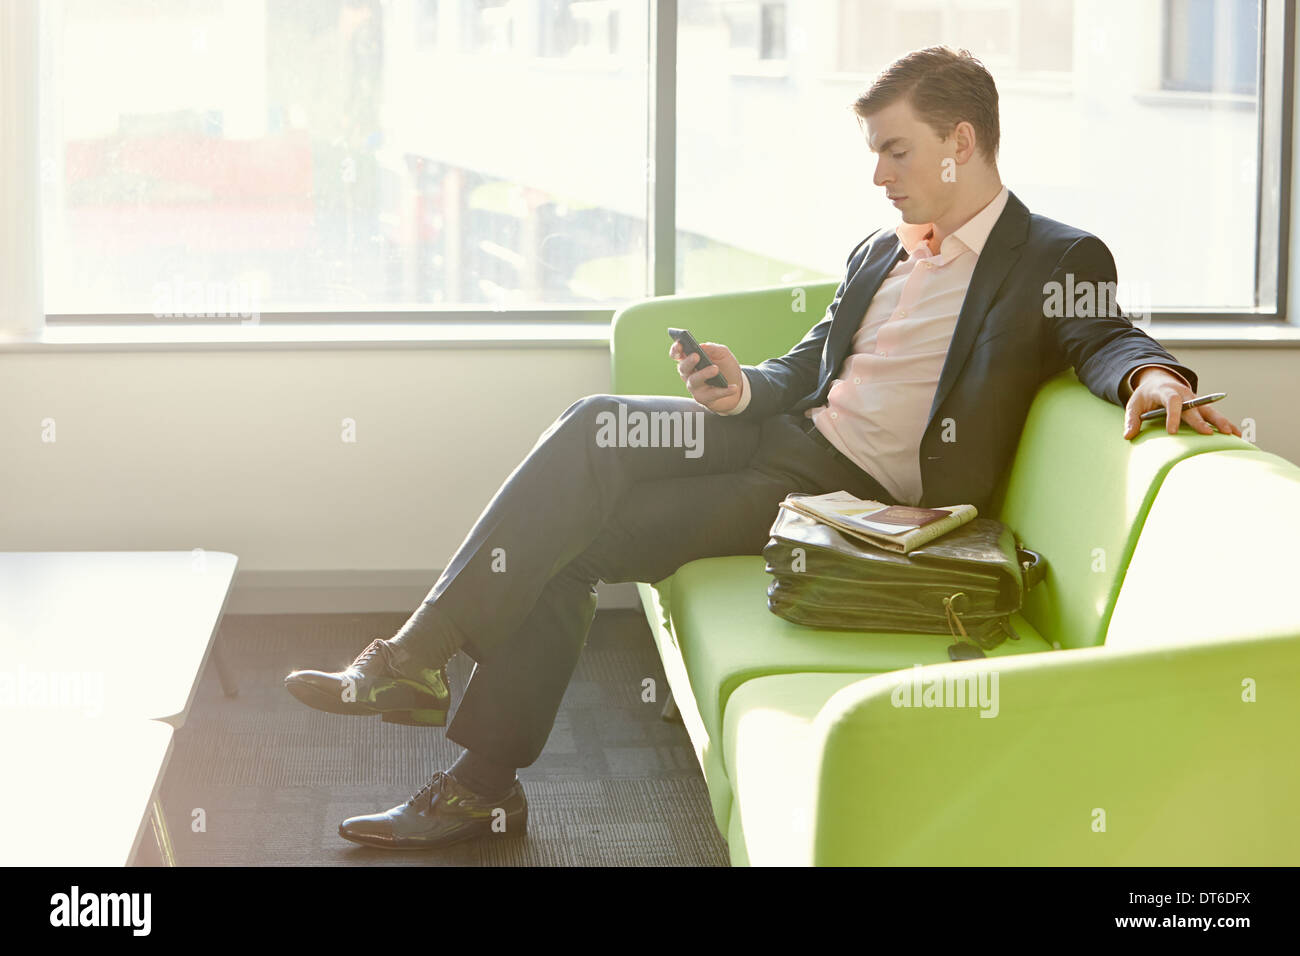 Businessman in departure lounge using cell phone Stock Photo